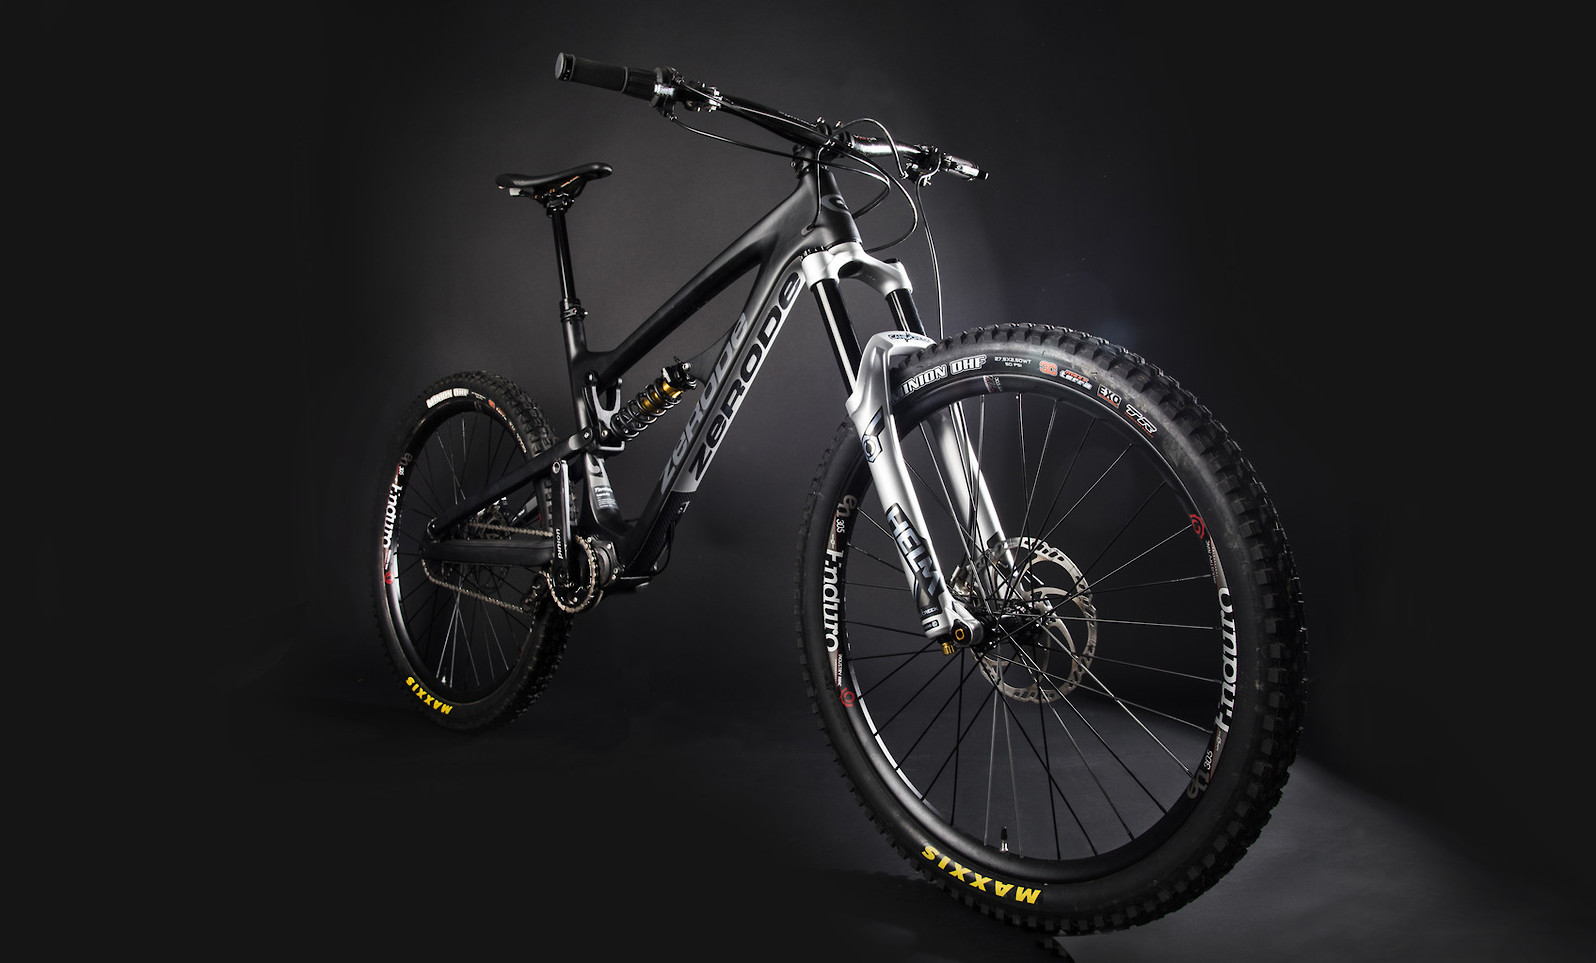 2018 Zerode Taniwha Signature Cane Creek Edition  Zerode Taniwha Cane Creek Edition